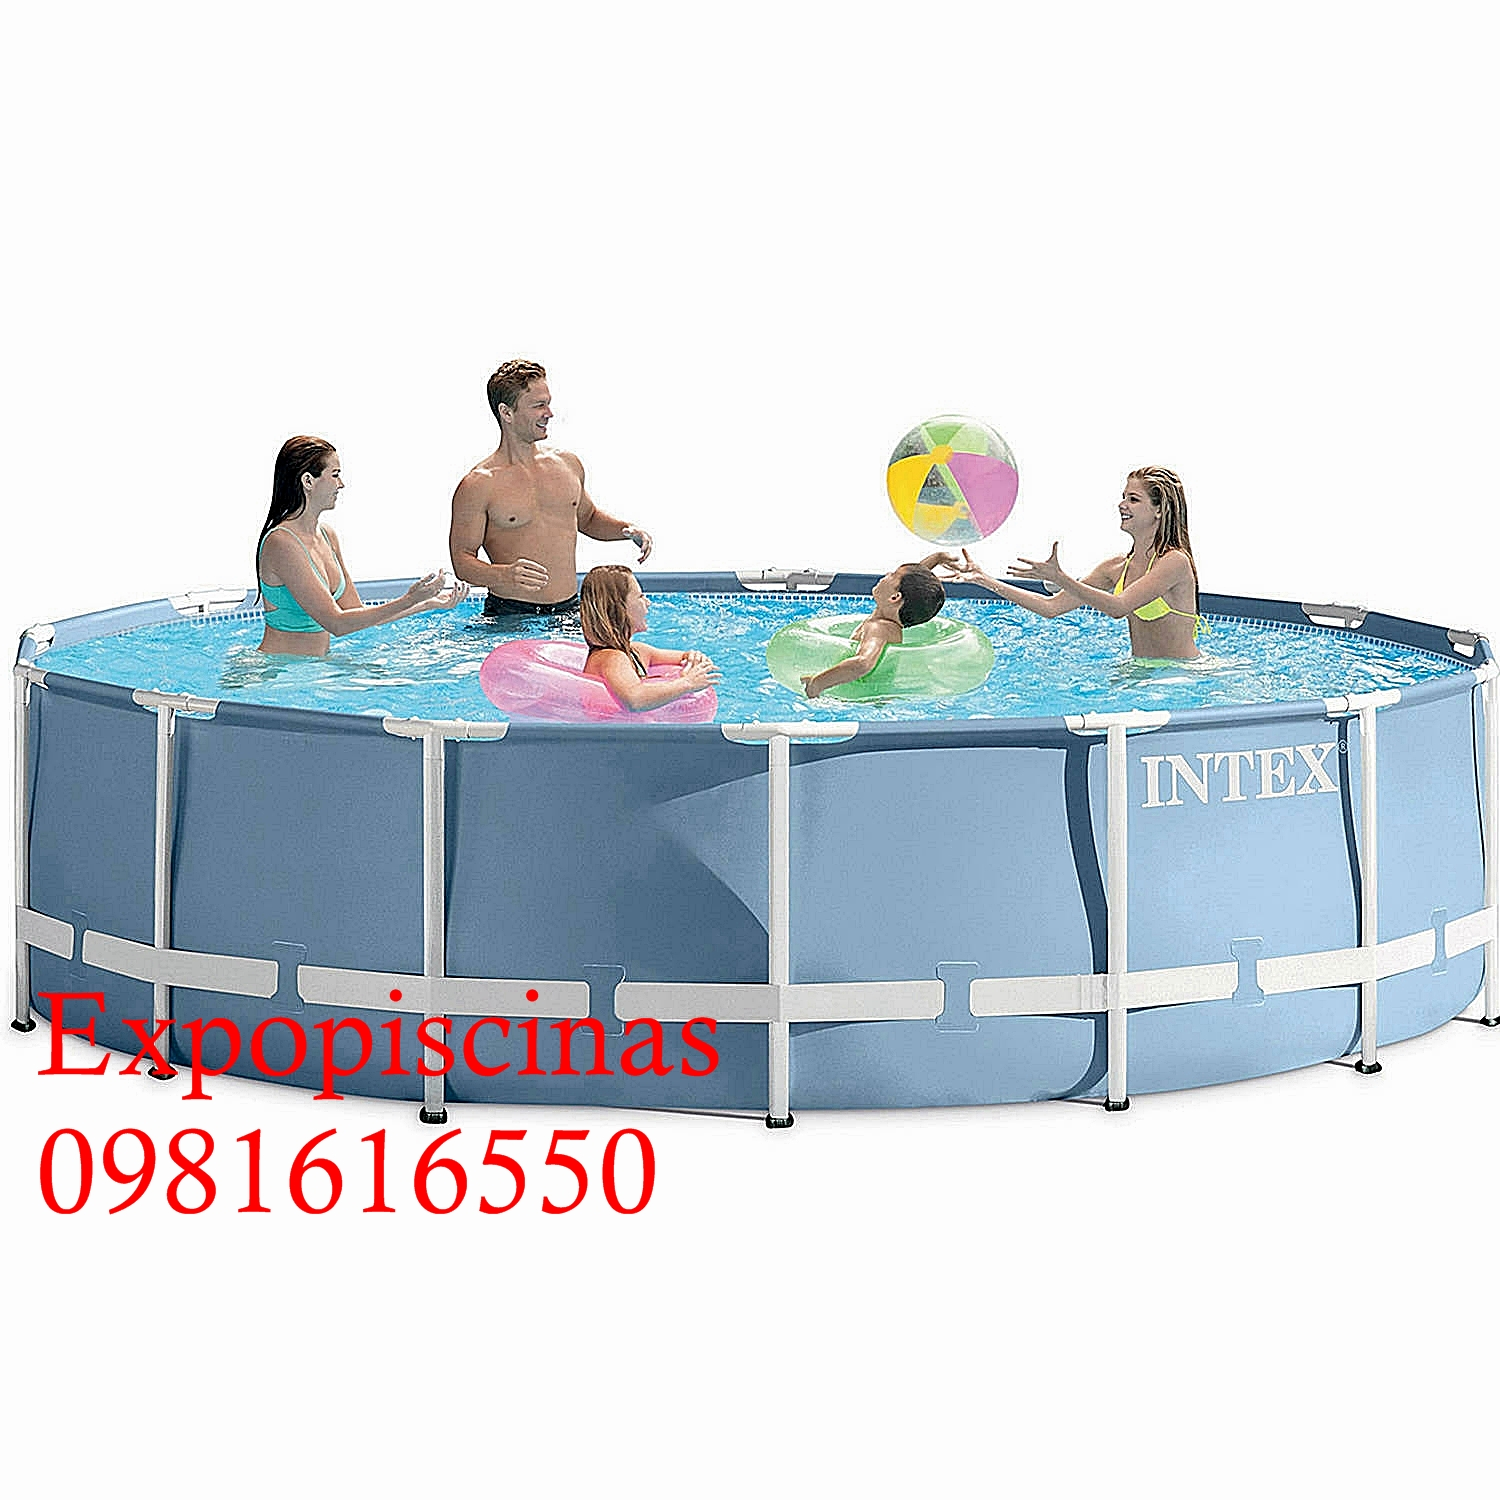 Piscina De Plastico 12000 Litros Intex Expo Piscinas Expo Piscinas